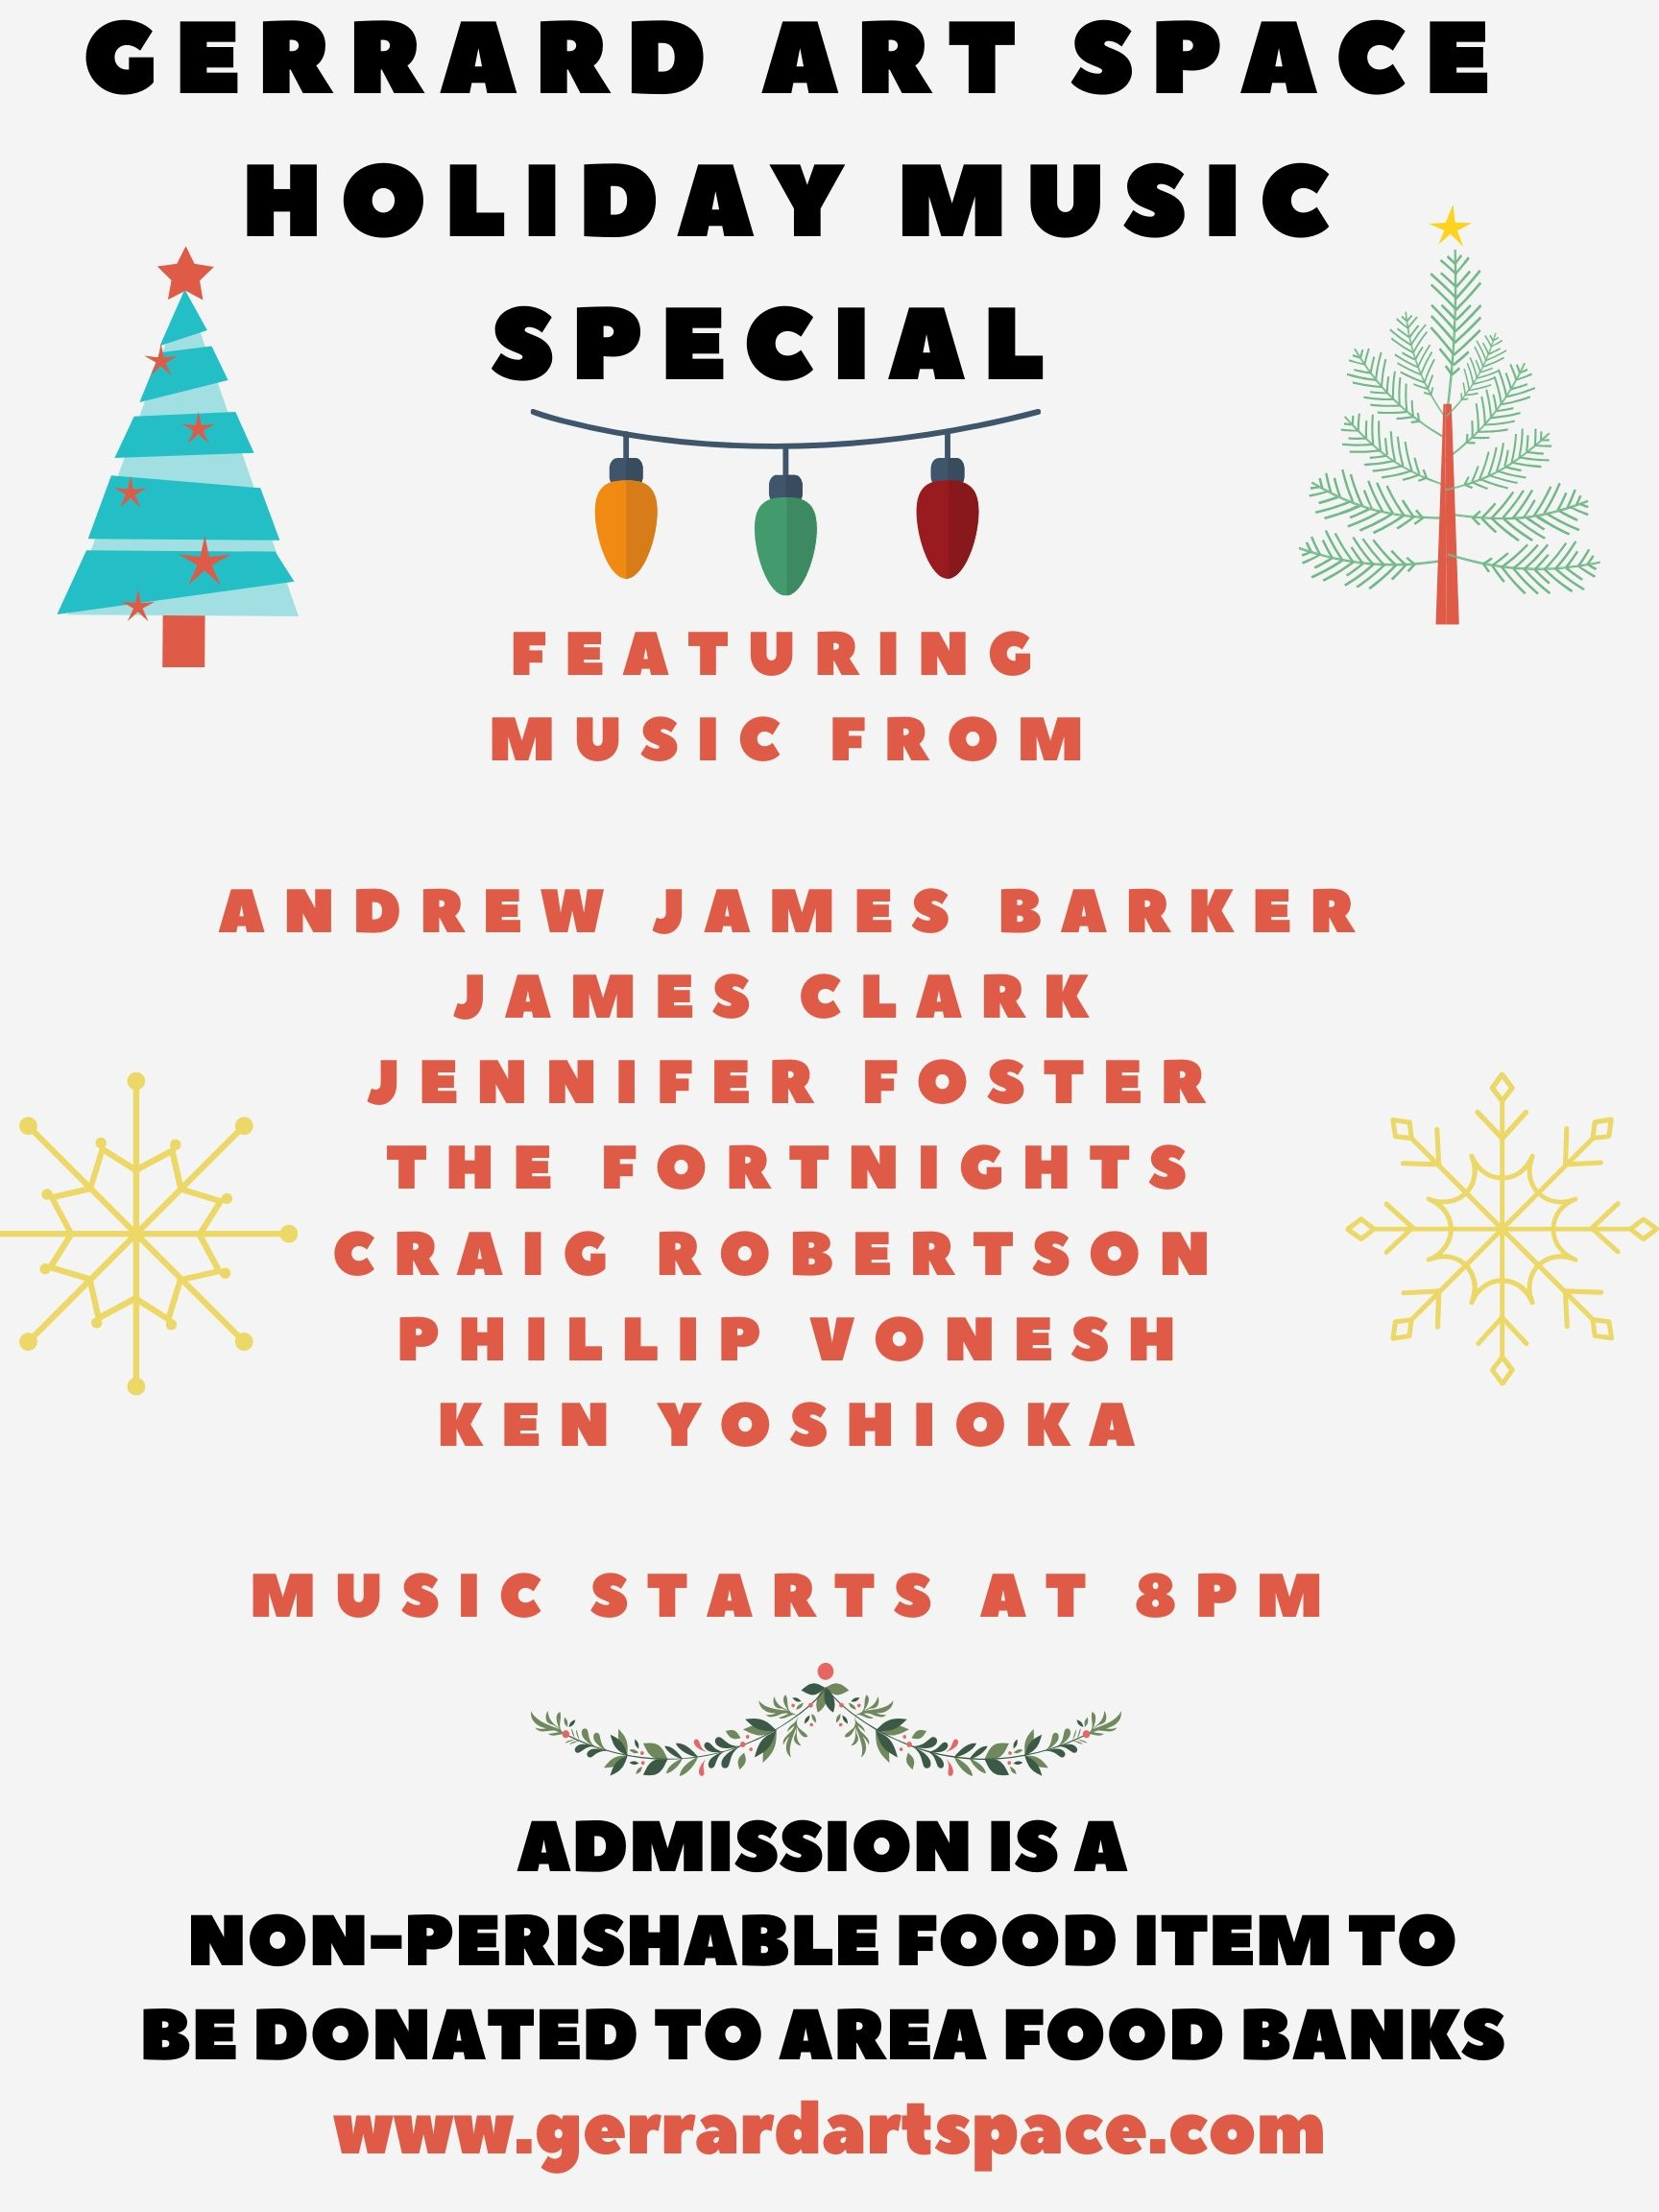 GERRARD ART SPACE HOLIDAY MUSIC SPECIAL-